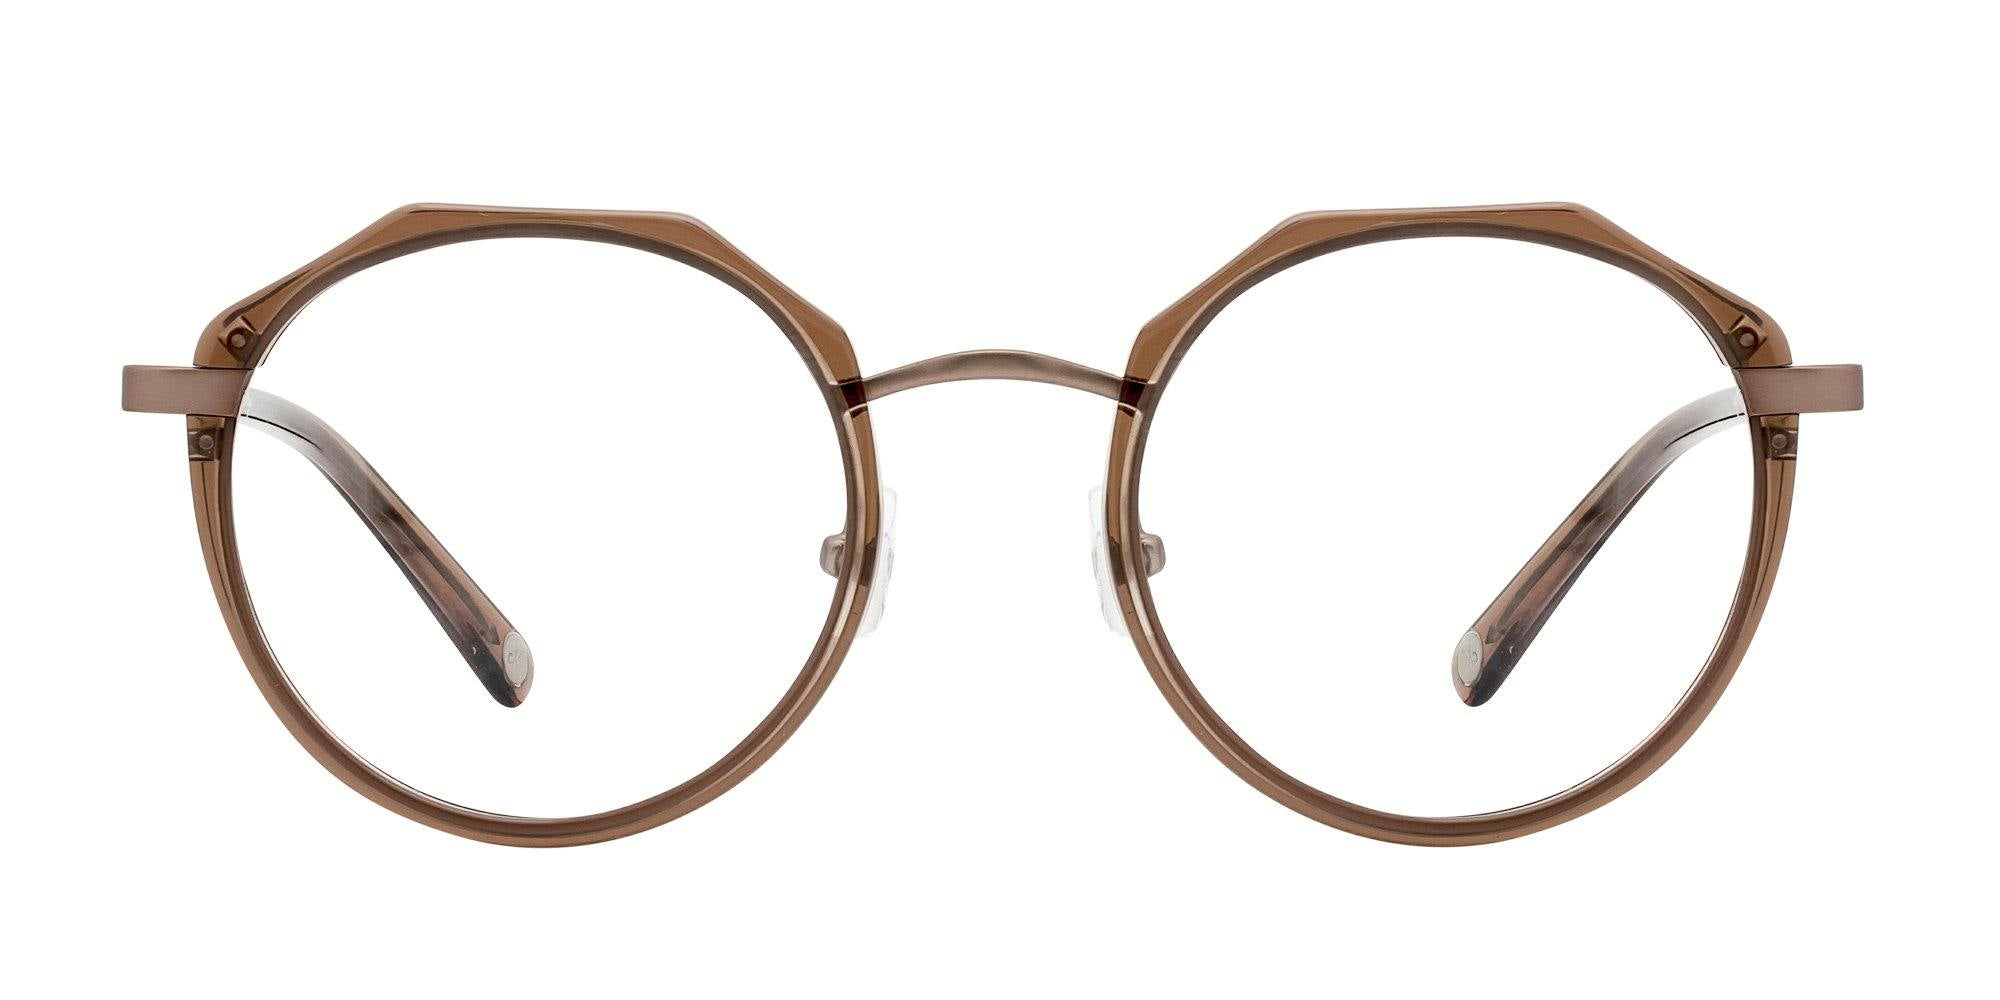 STACEY - Willow Mae Eyewear